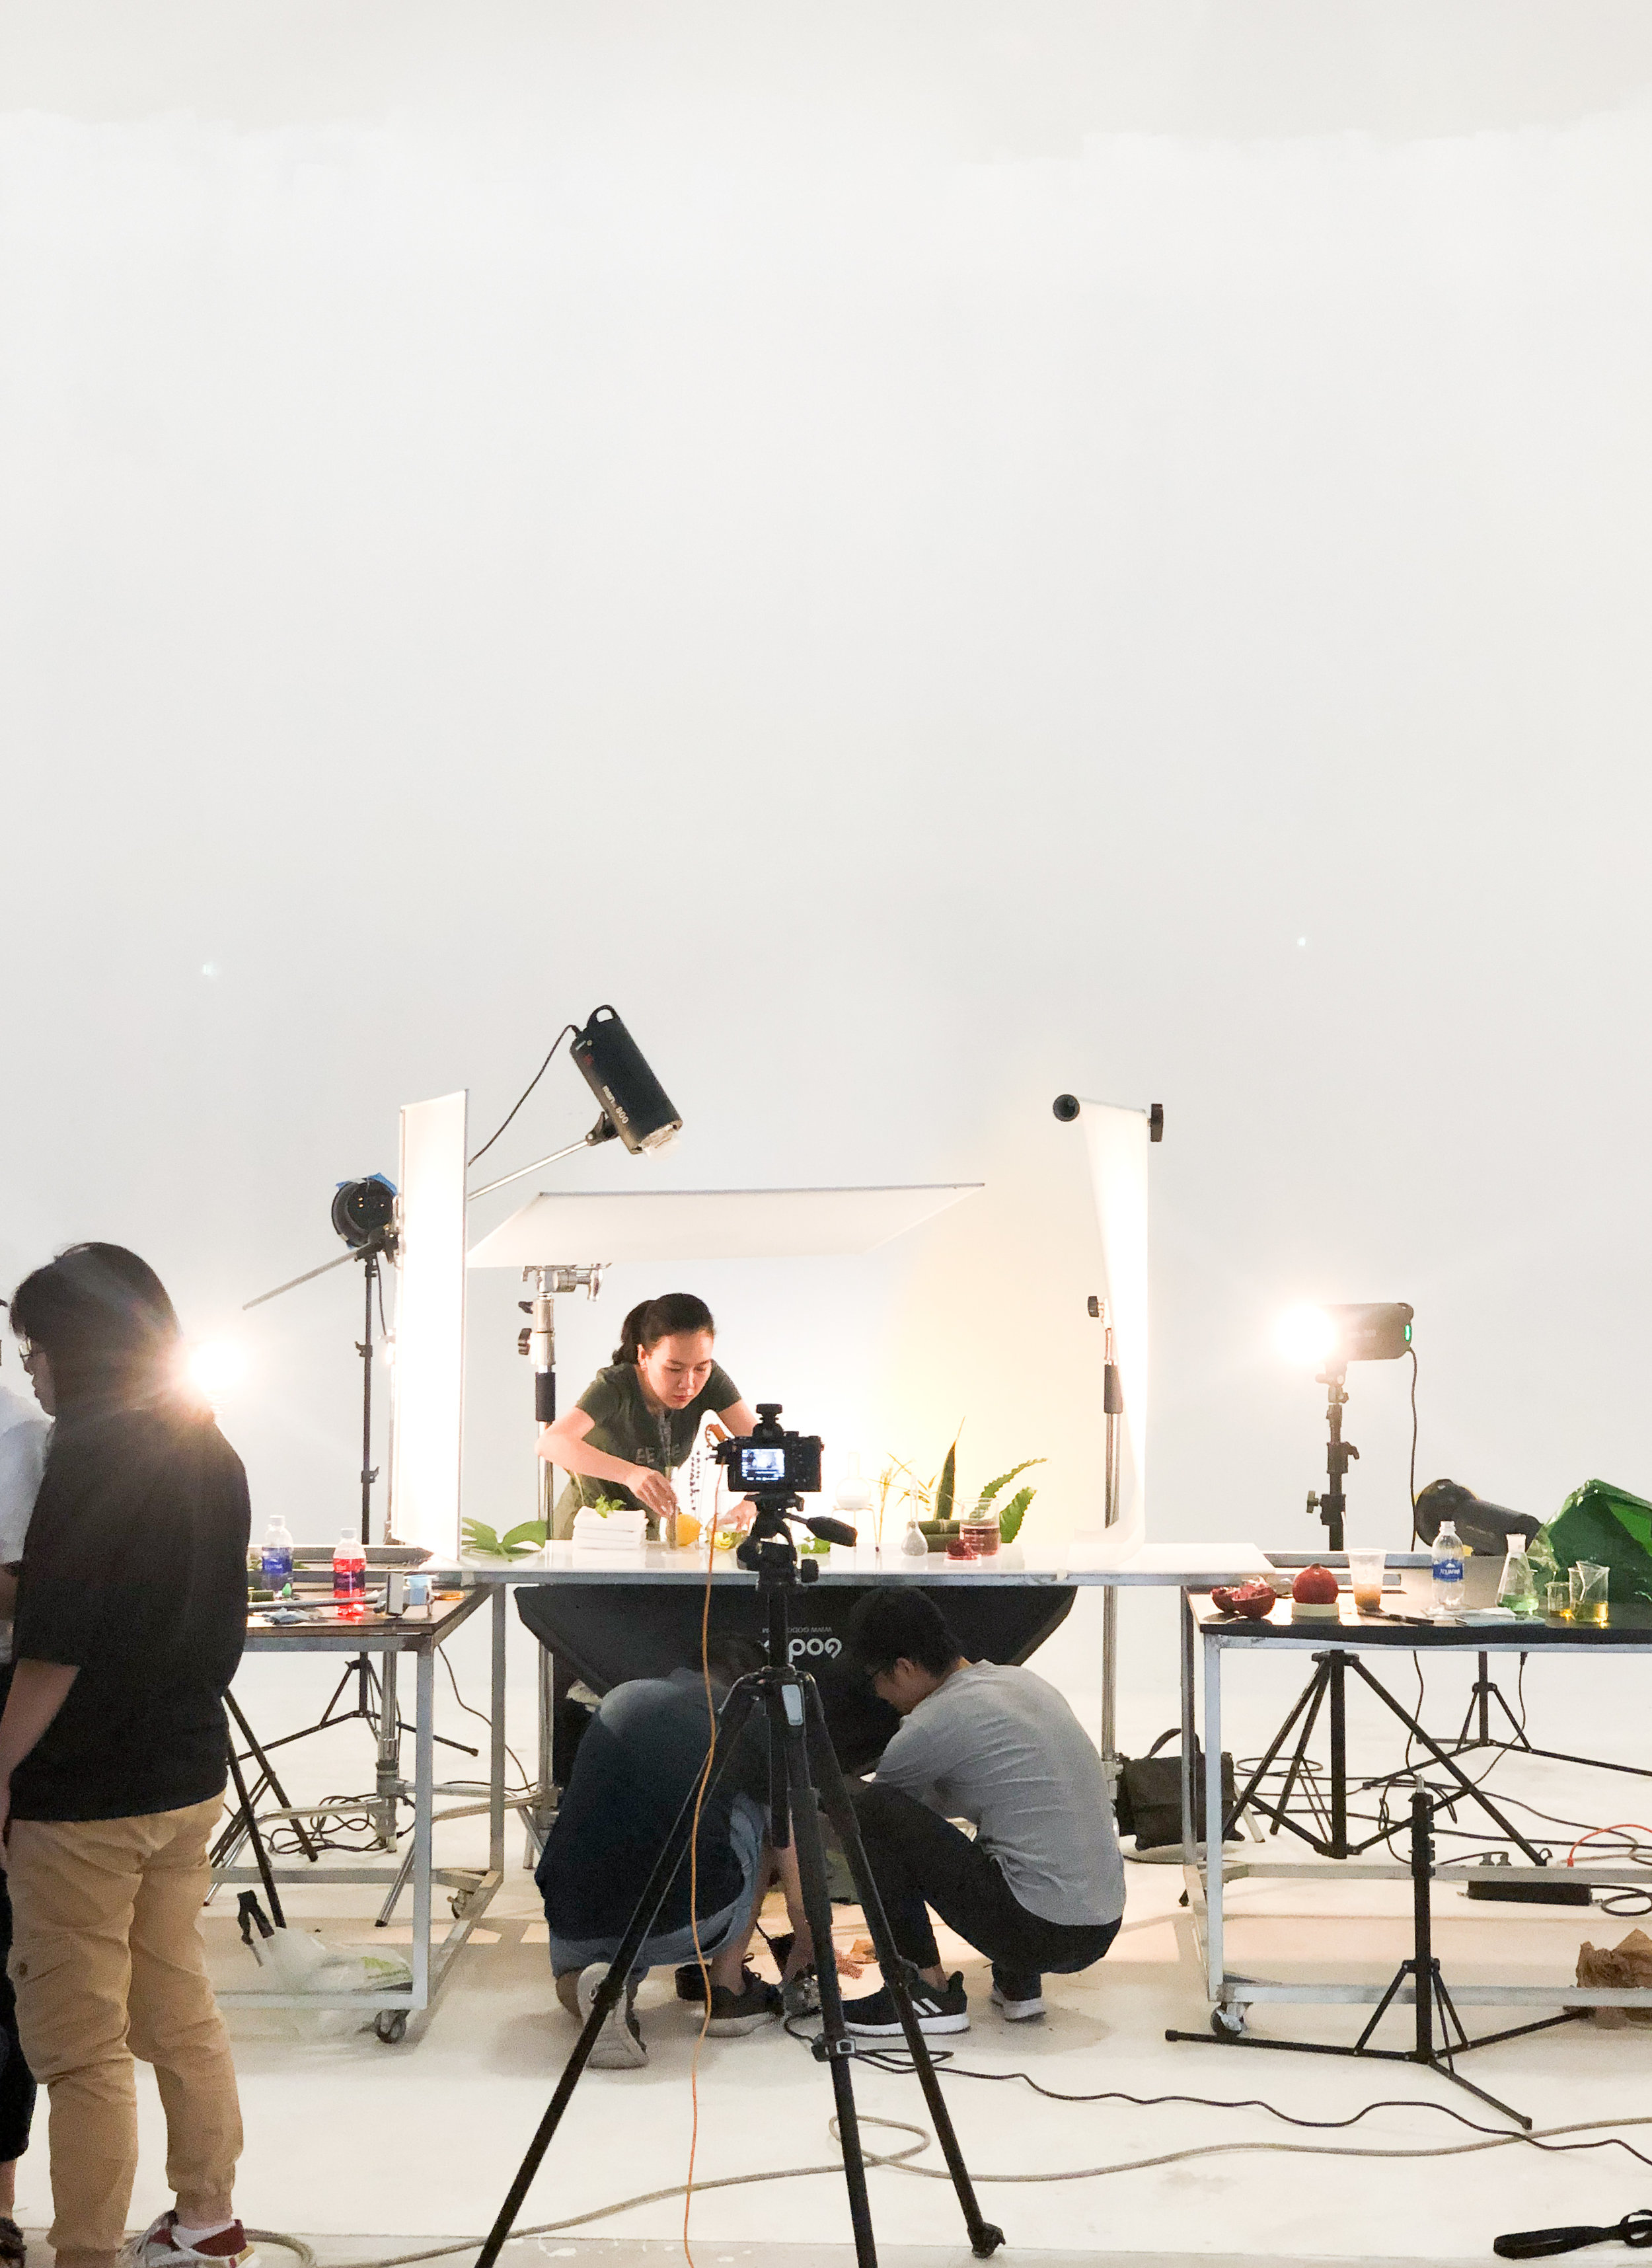 Shooting other elements in a studio.